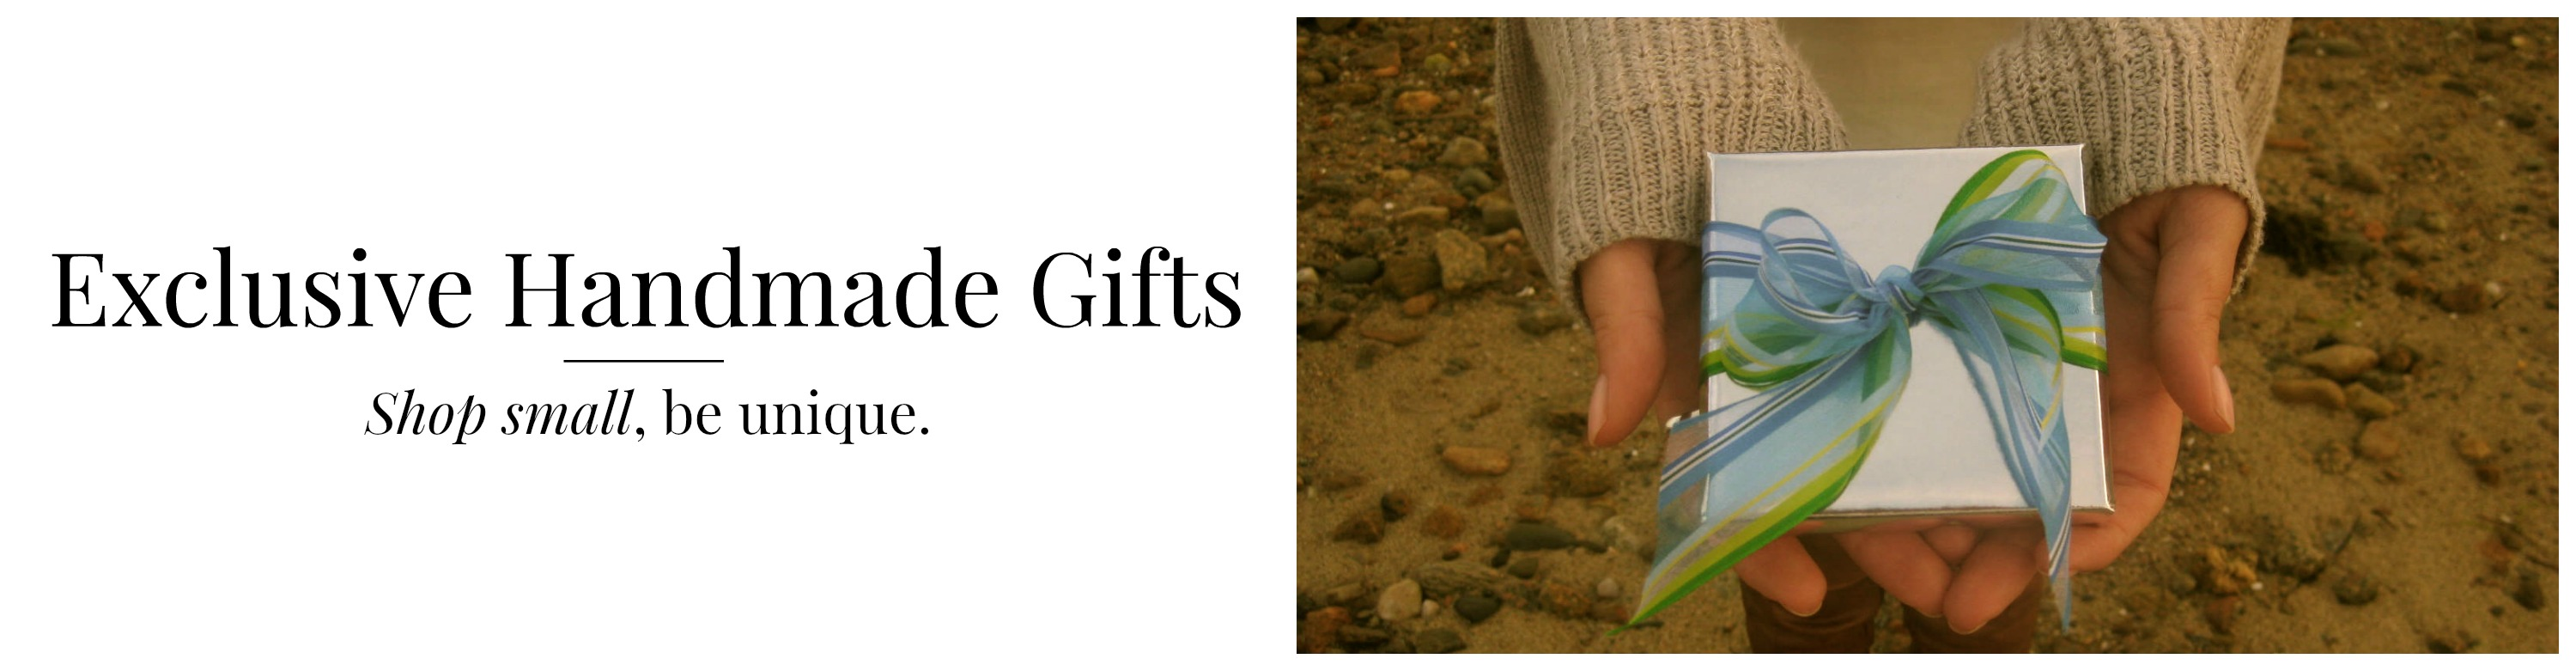 exclusive-gifts.jpg